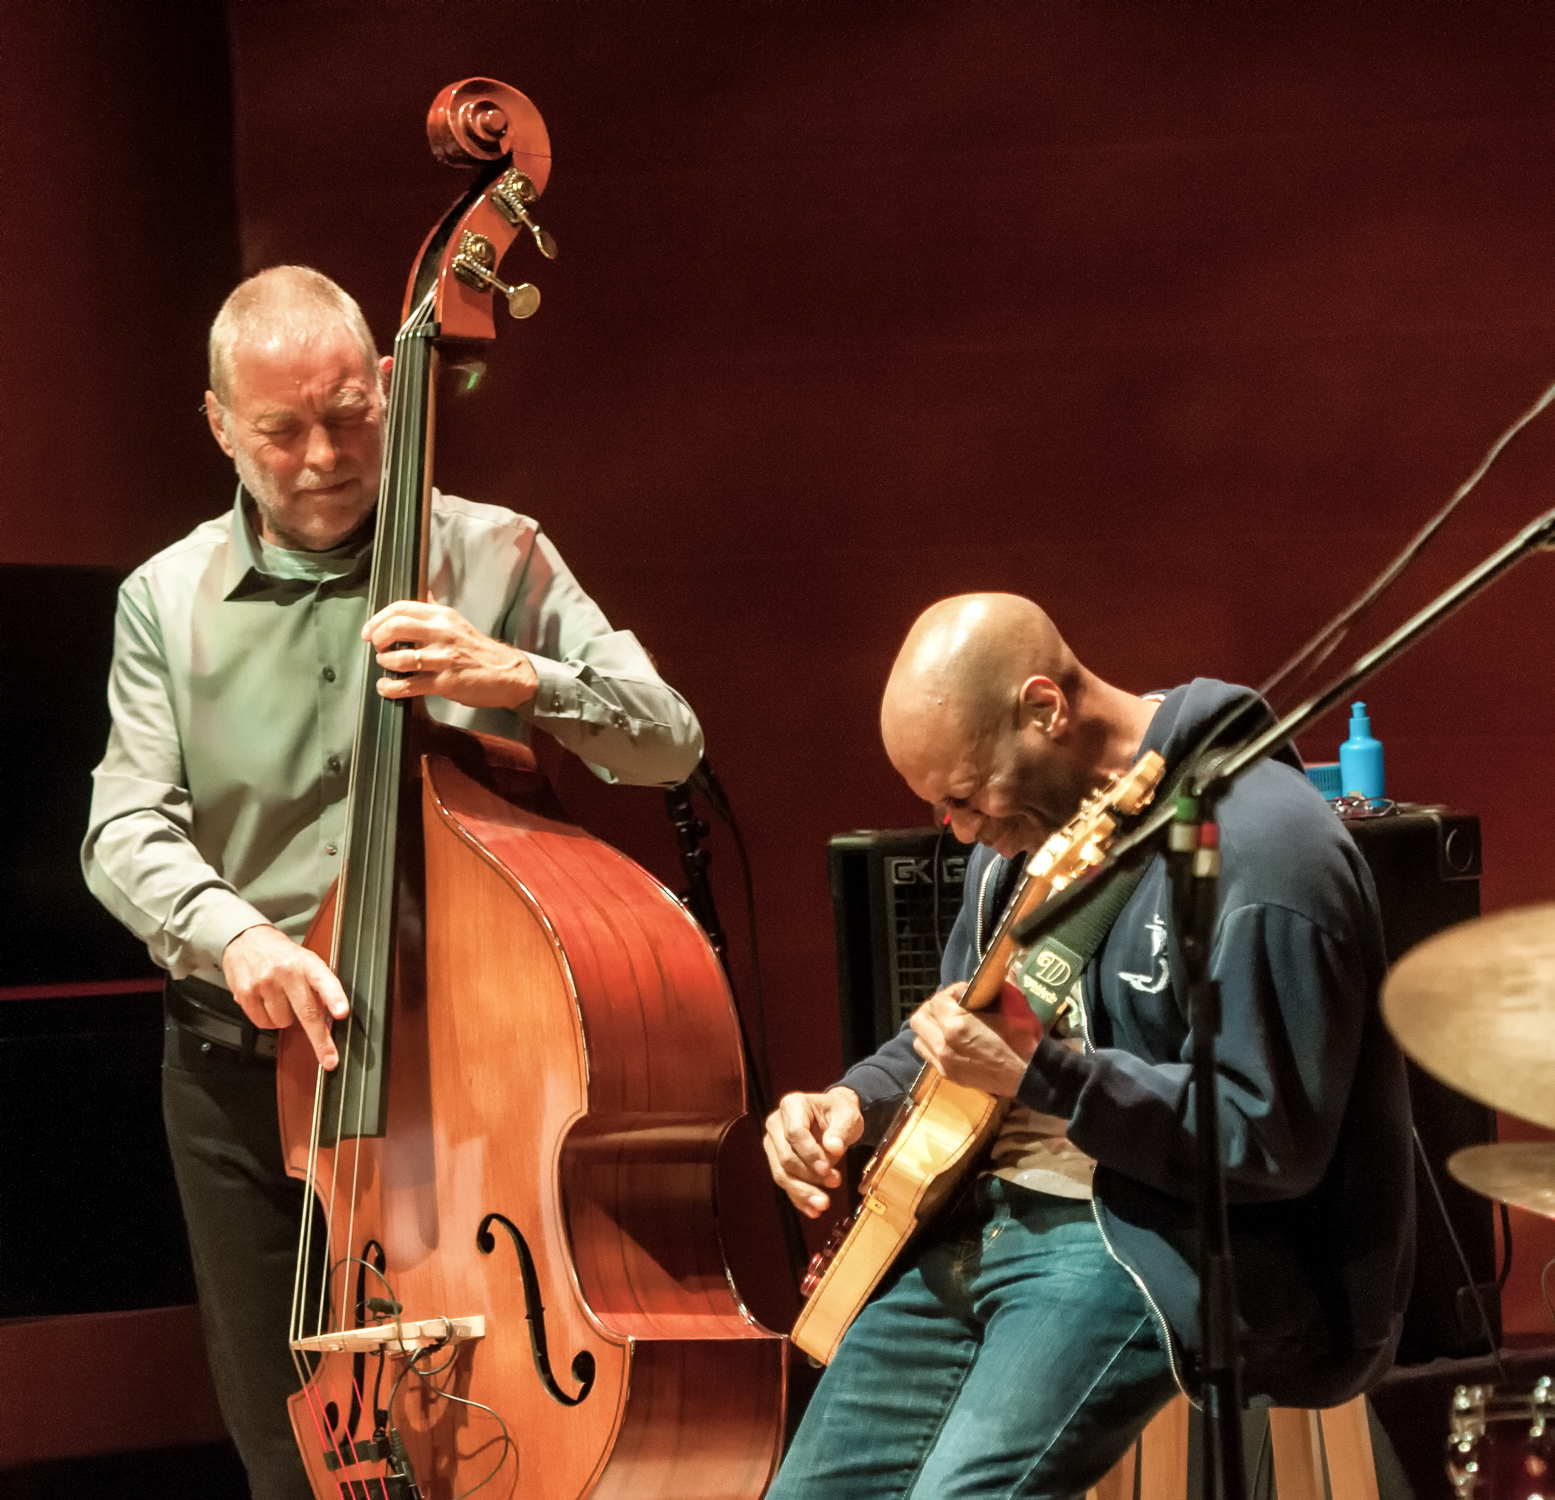 Dave Holland And Kevin Eubanks With Prism At The Musical Instruments Museum (mim) In Phoenix